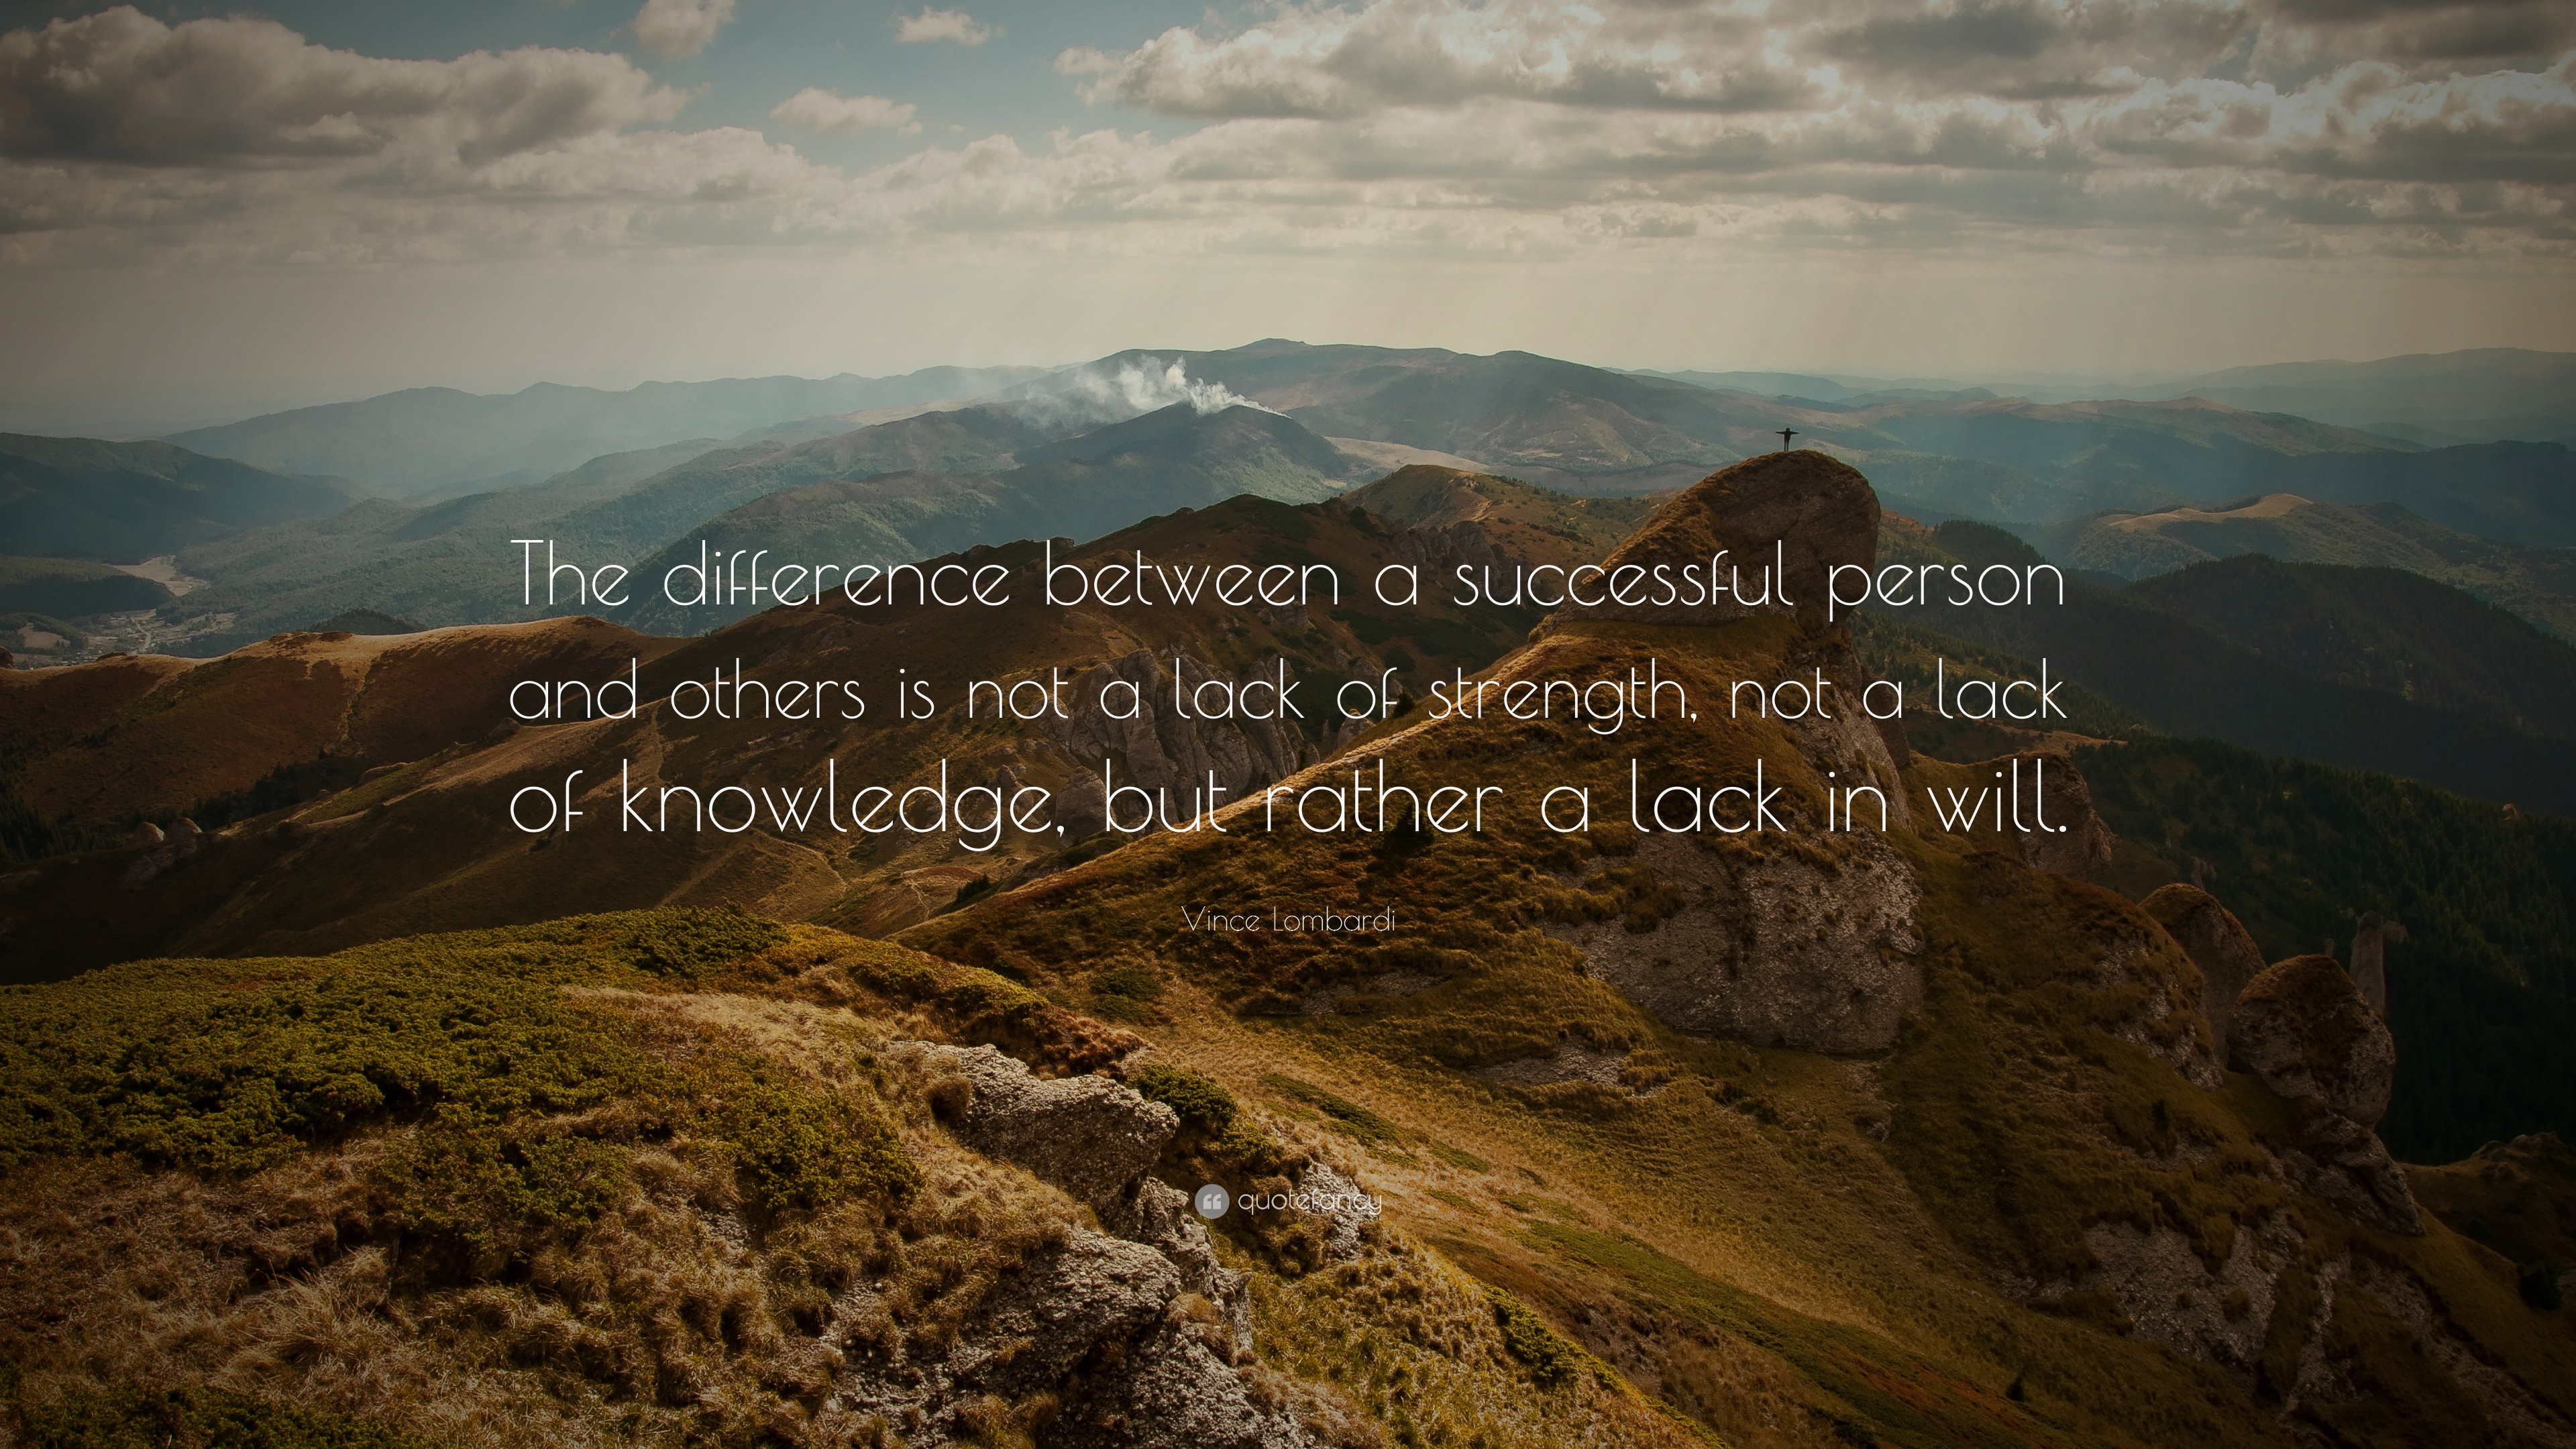 positive quotes 53 quotefancy positive quotes the difference between a successful person and others is not a lack